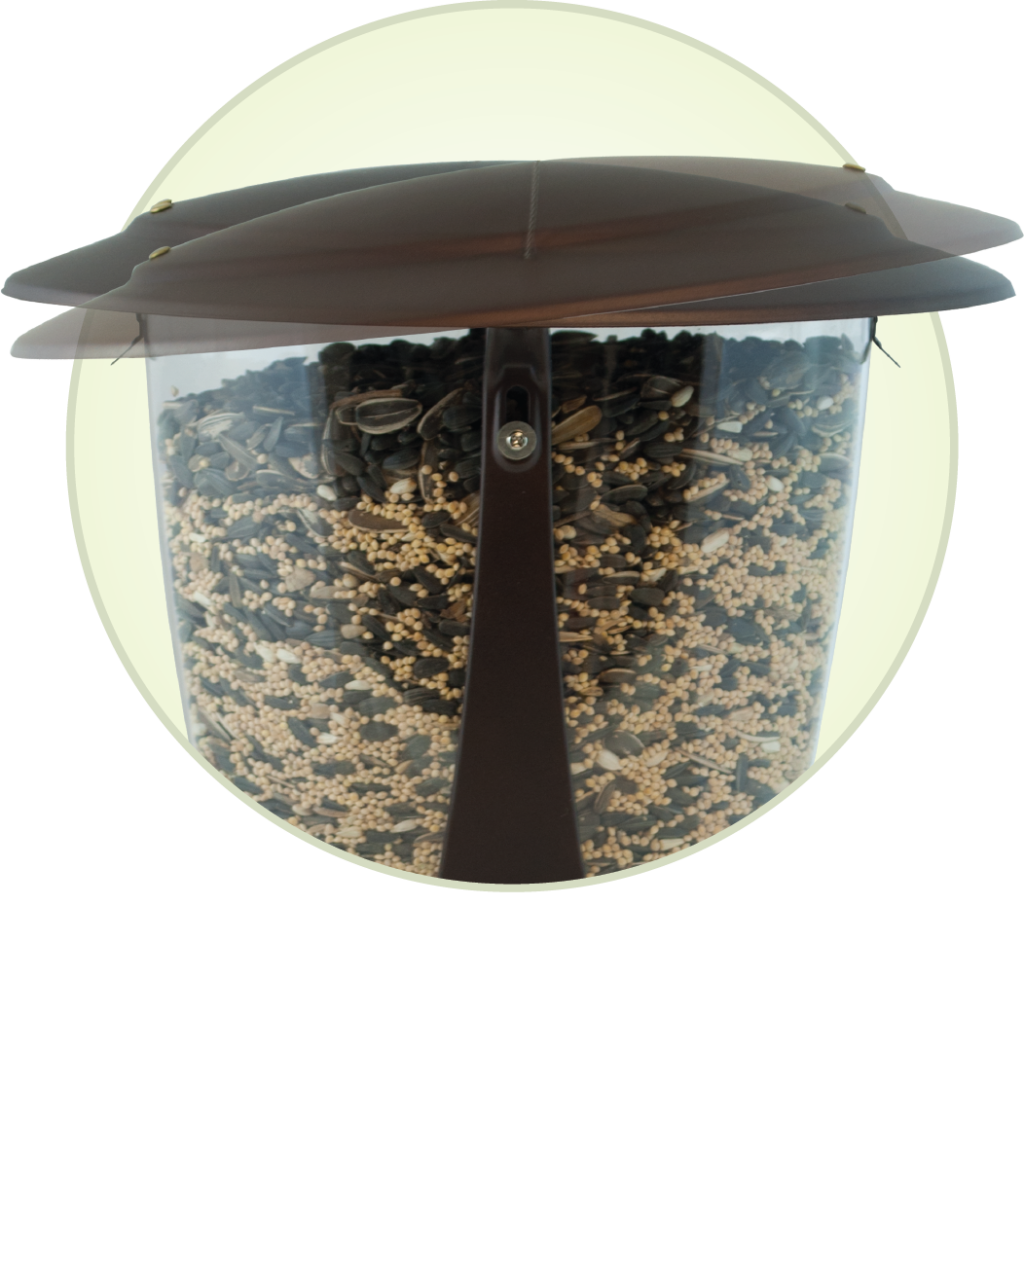 Squirrel-X2 squirrel resistant feeder top